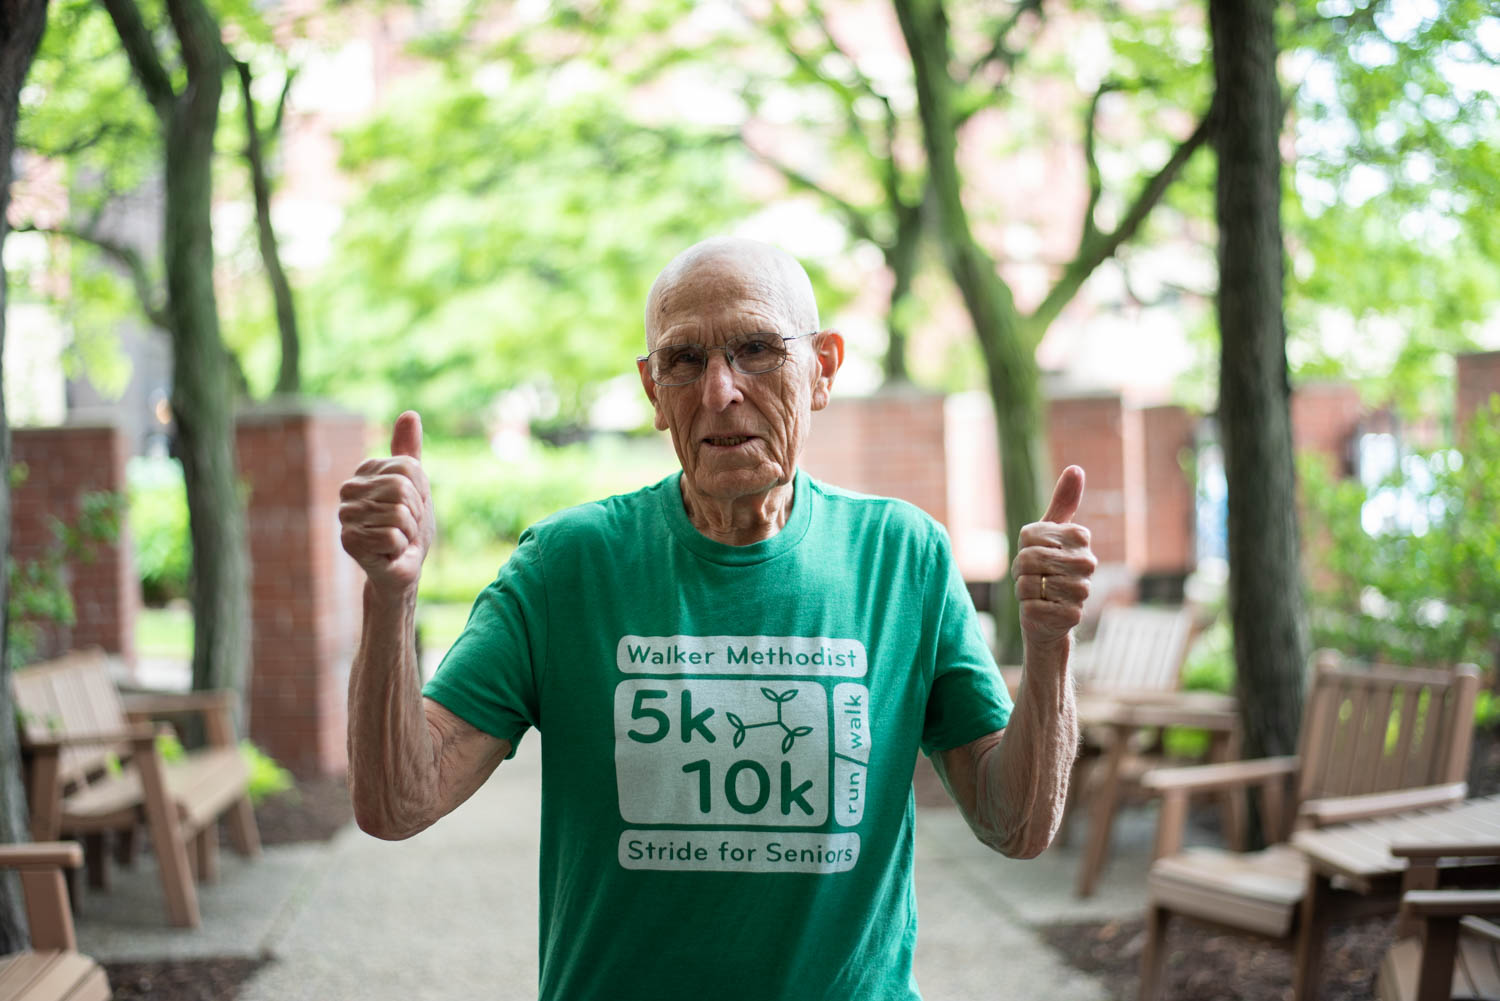 Resident Orin runs to support his community